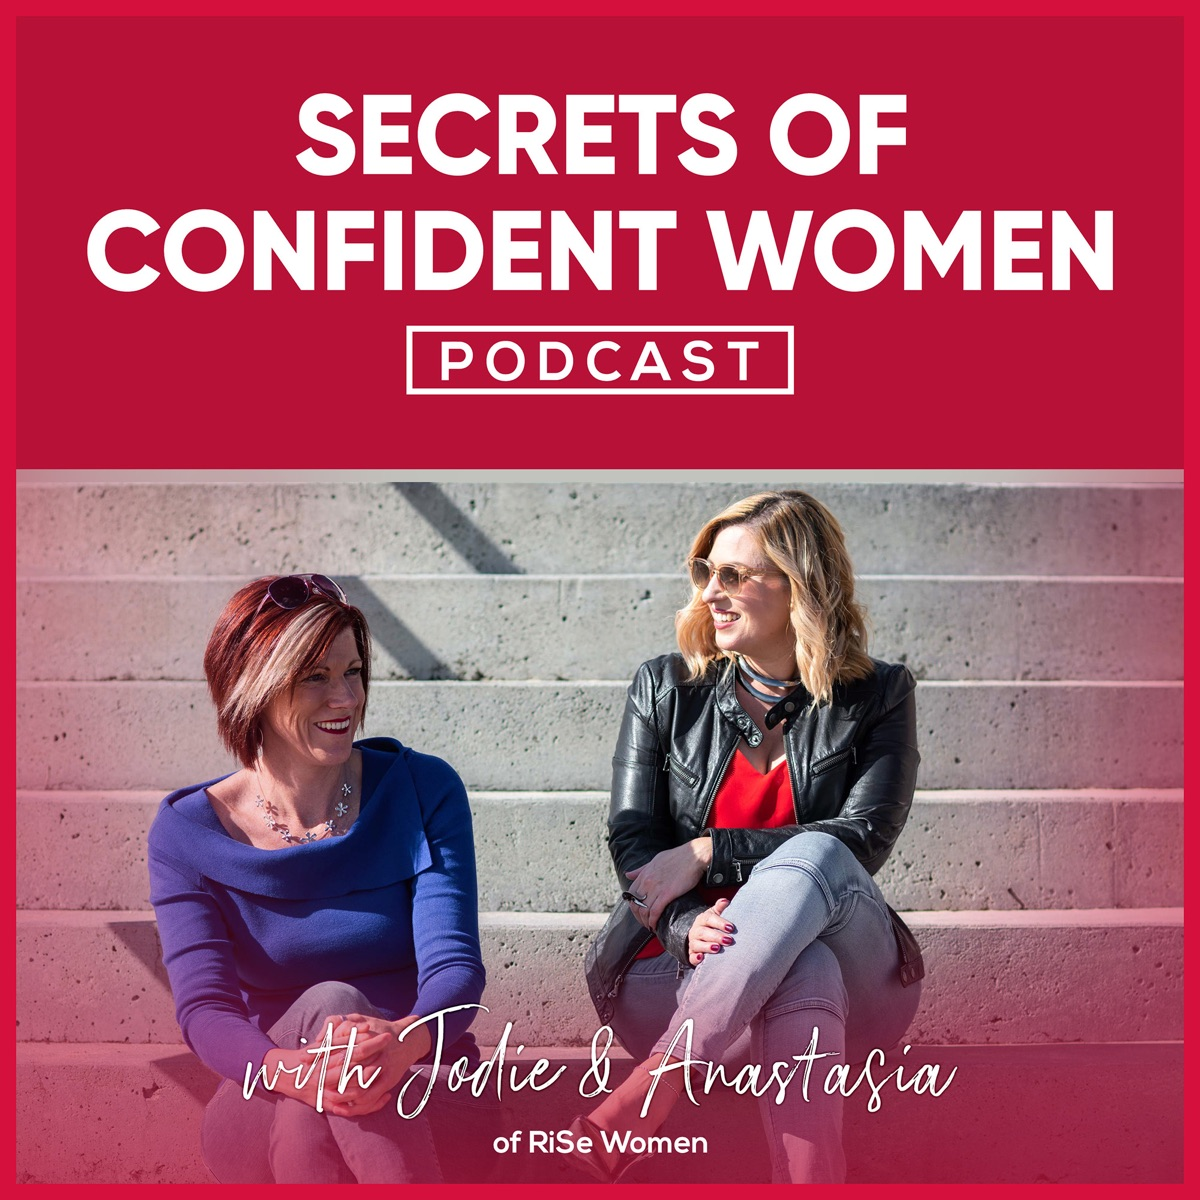 Secrets of Confident Women Podcast